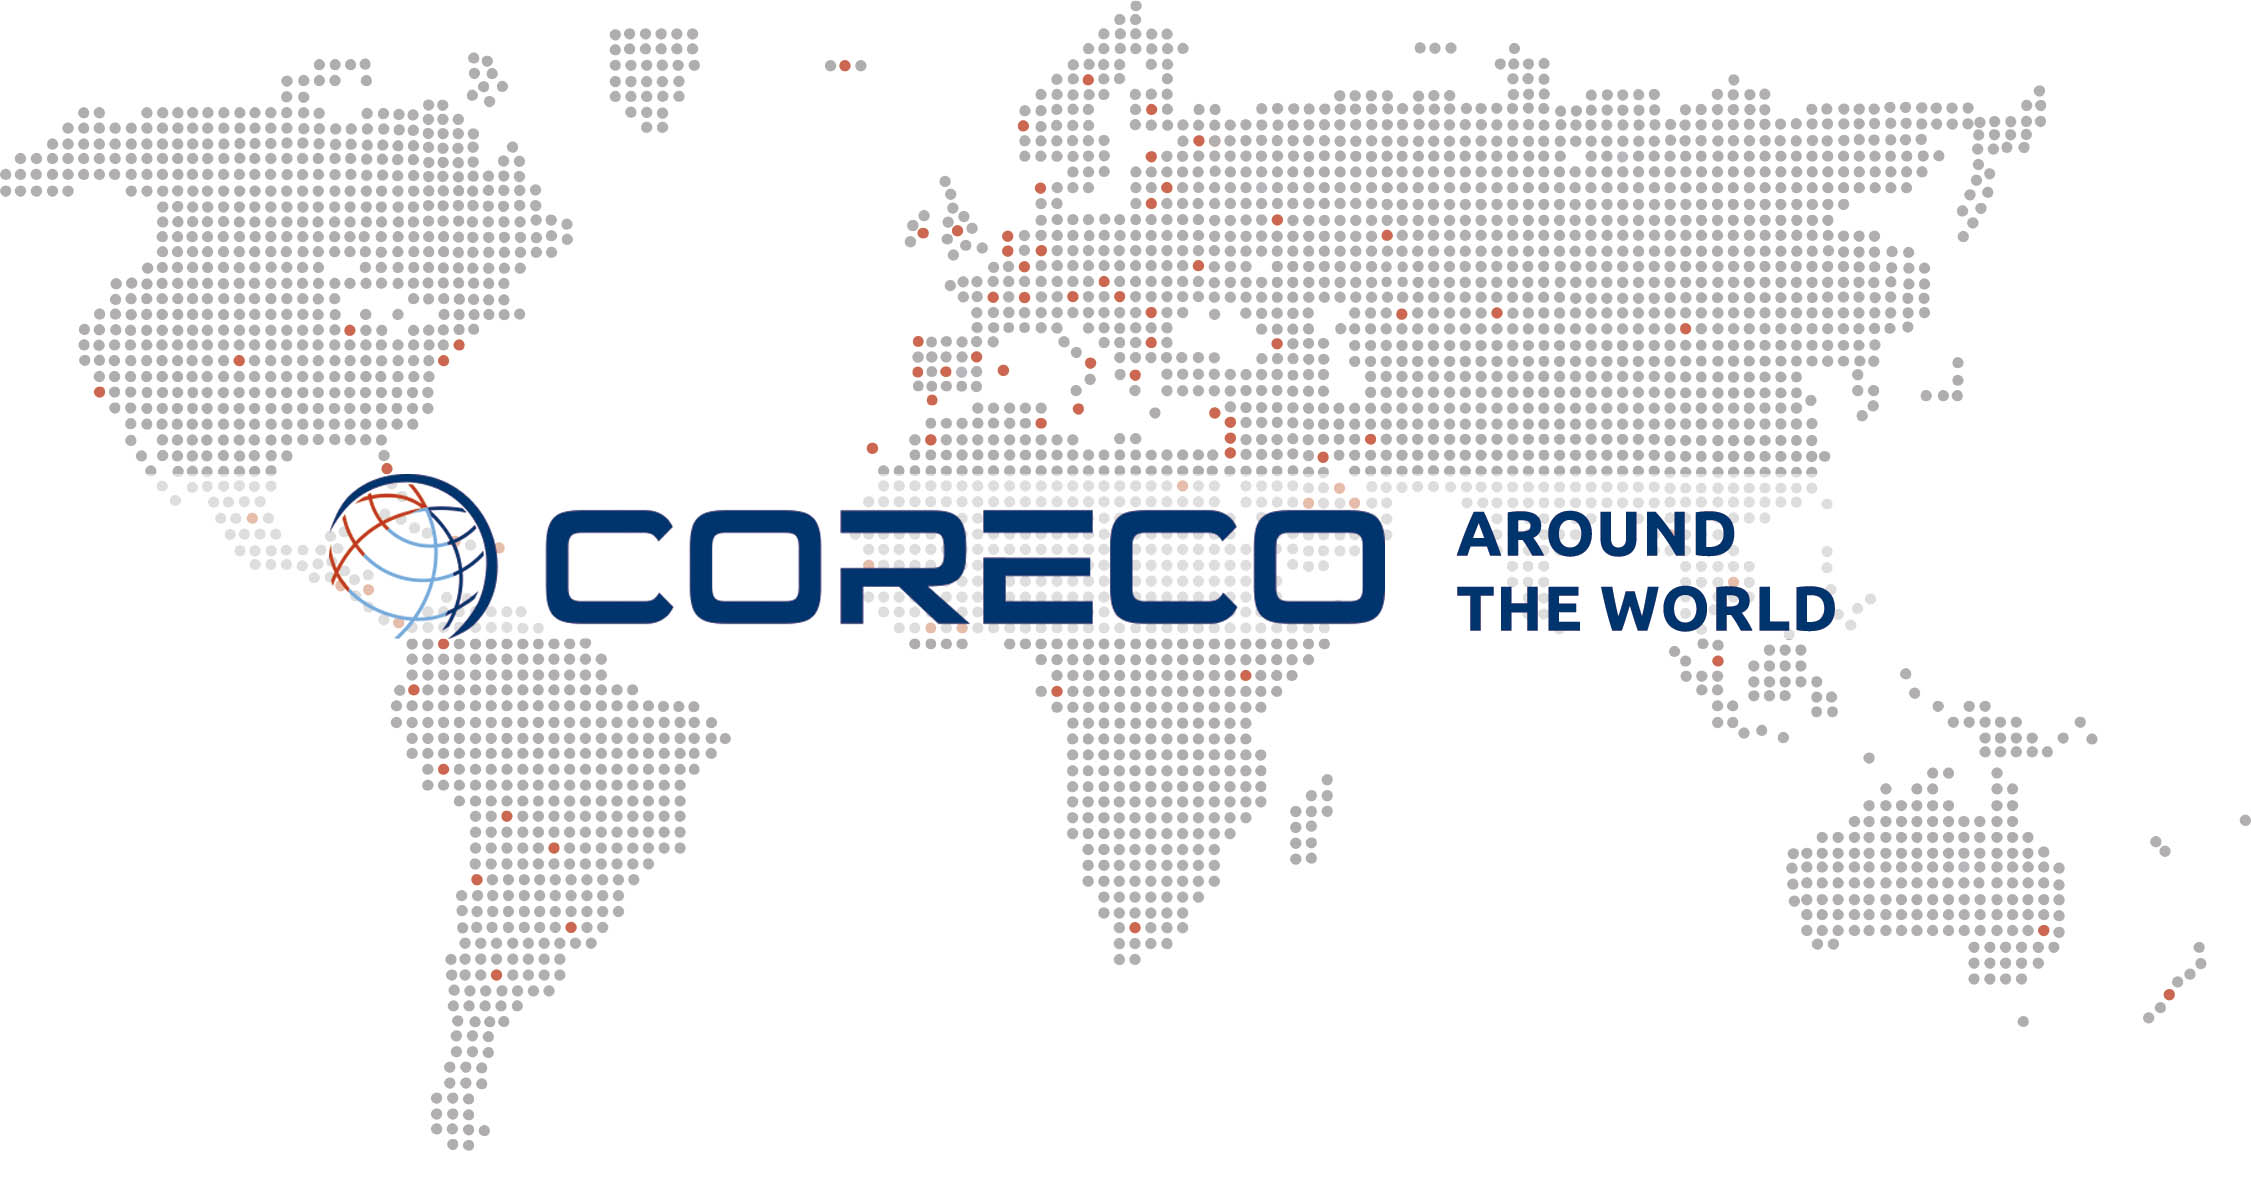 Coreco arround the World